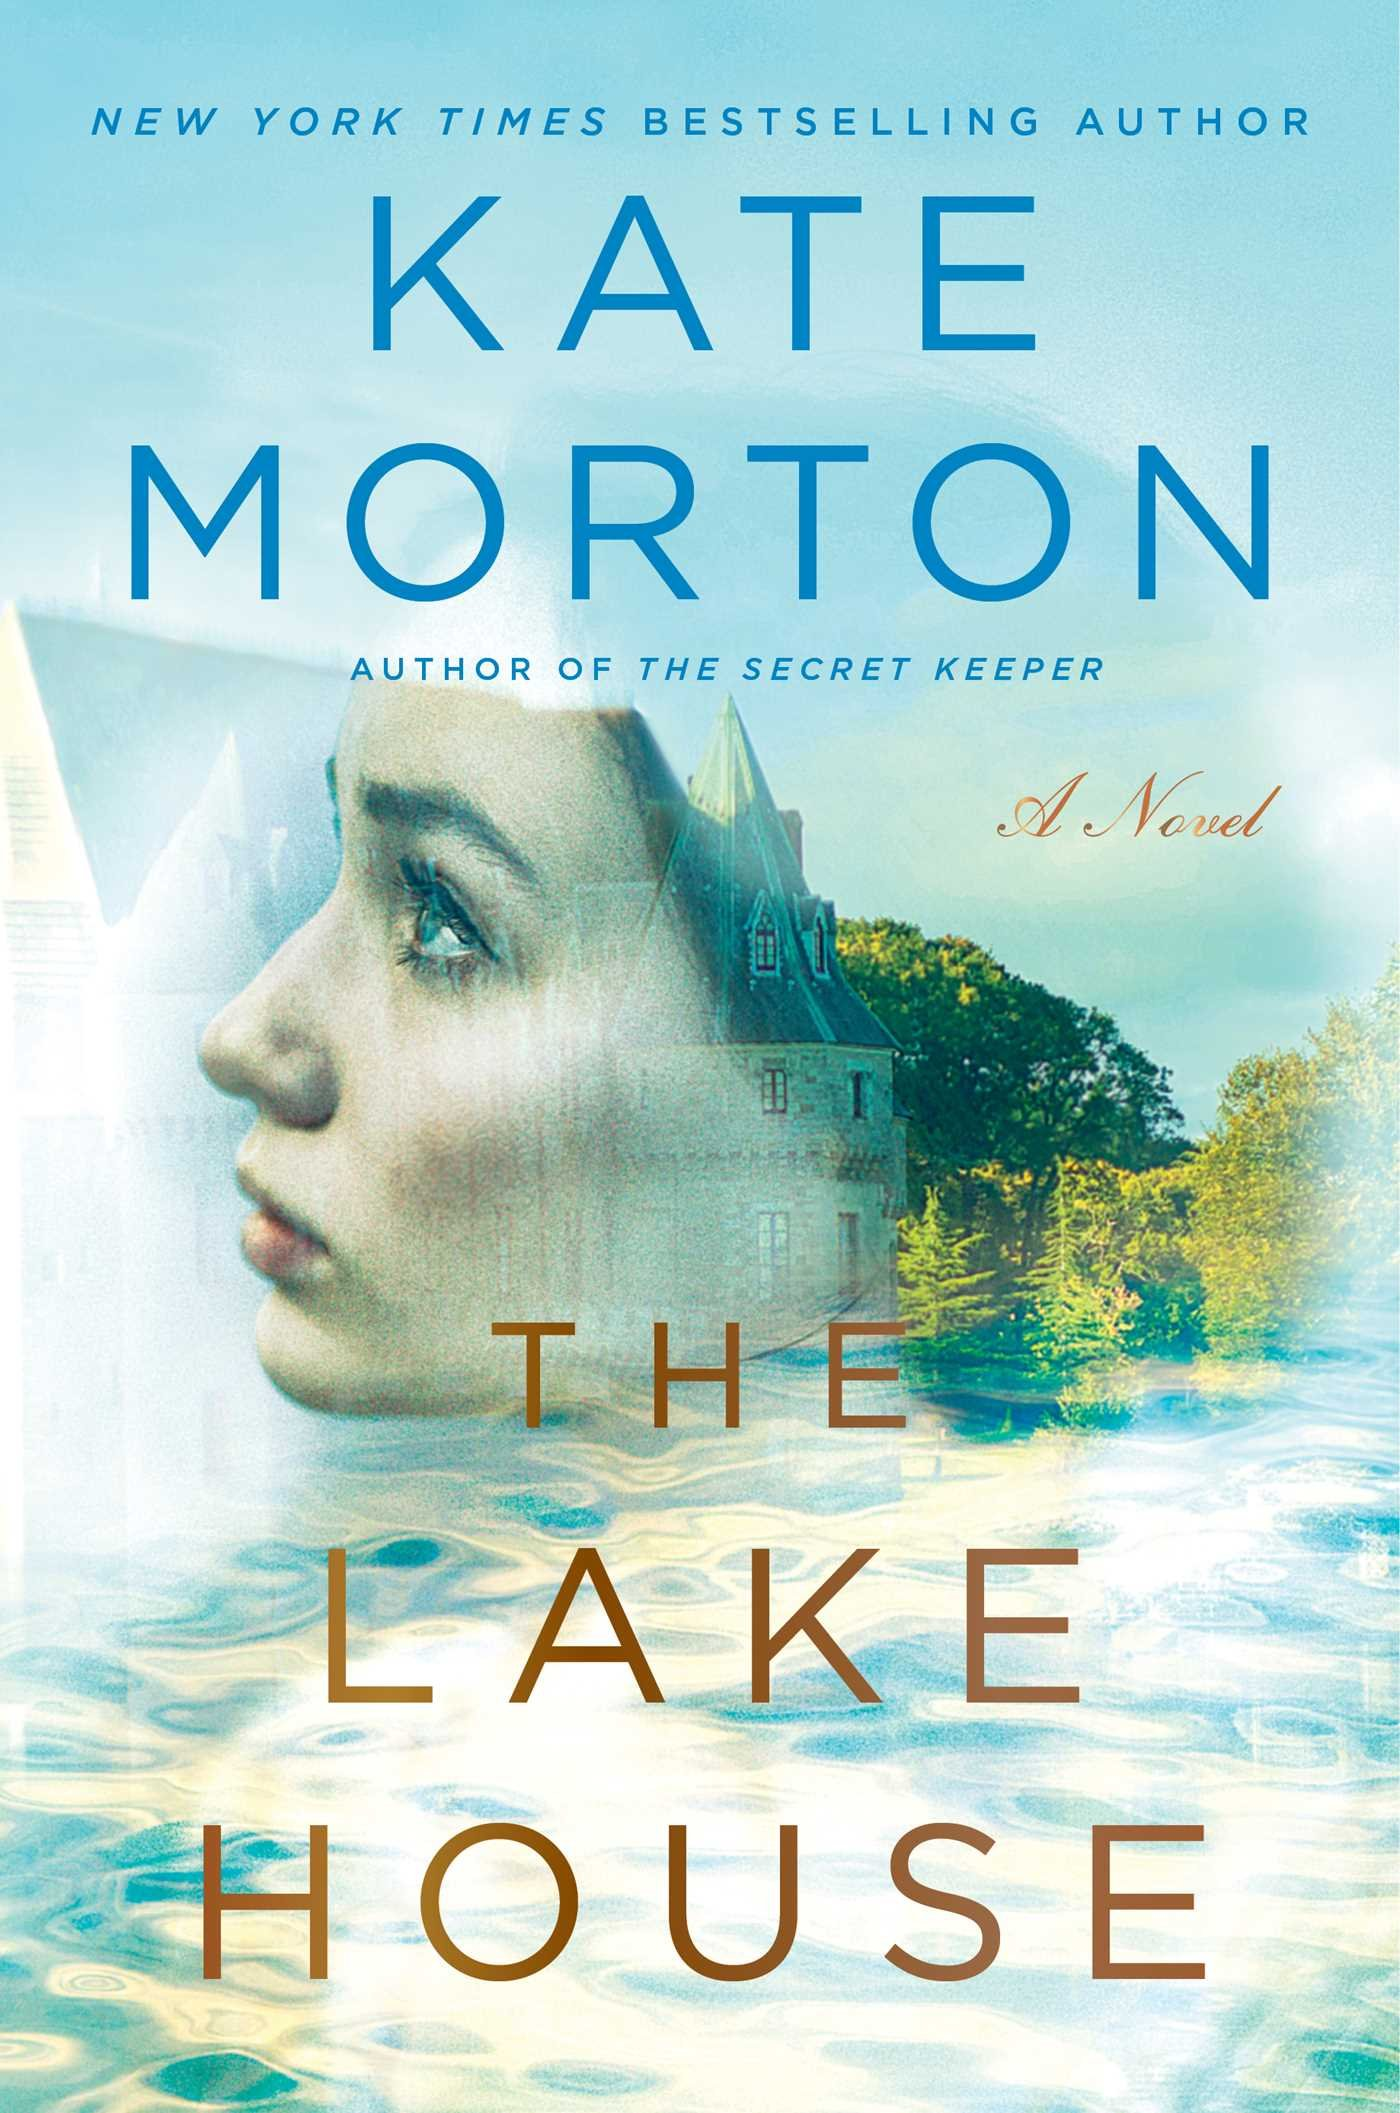 Buy the lake house a novel book online at low prices in india the buy the lake house a novel book online at low prices in india the lake house a novel reviews ratings amazon fandeluxe Image collections